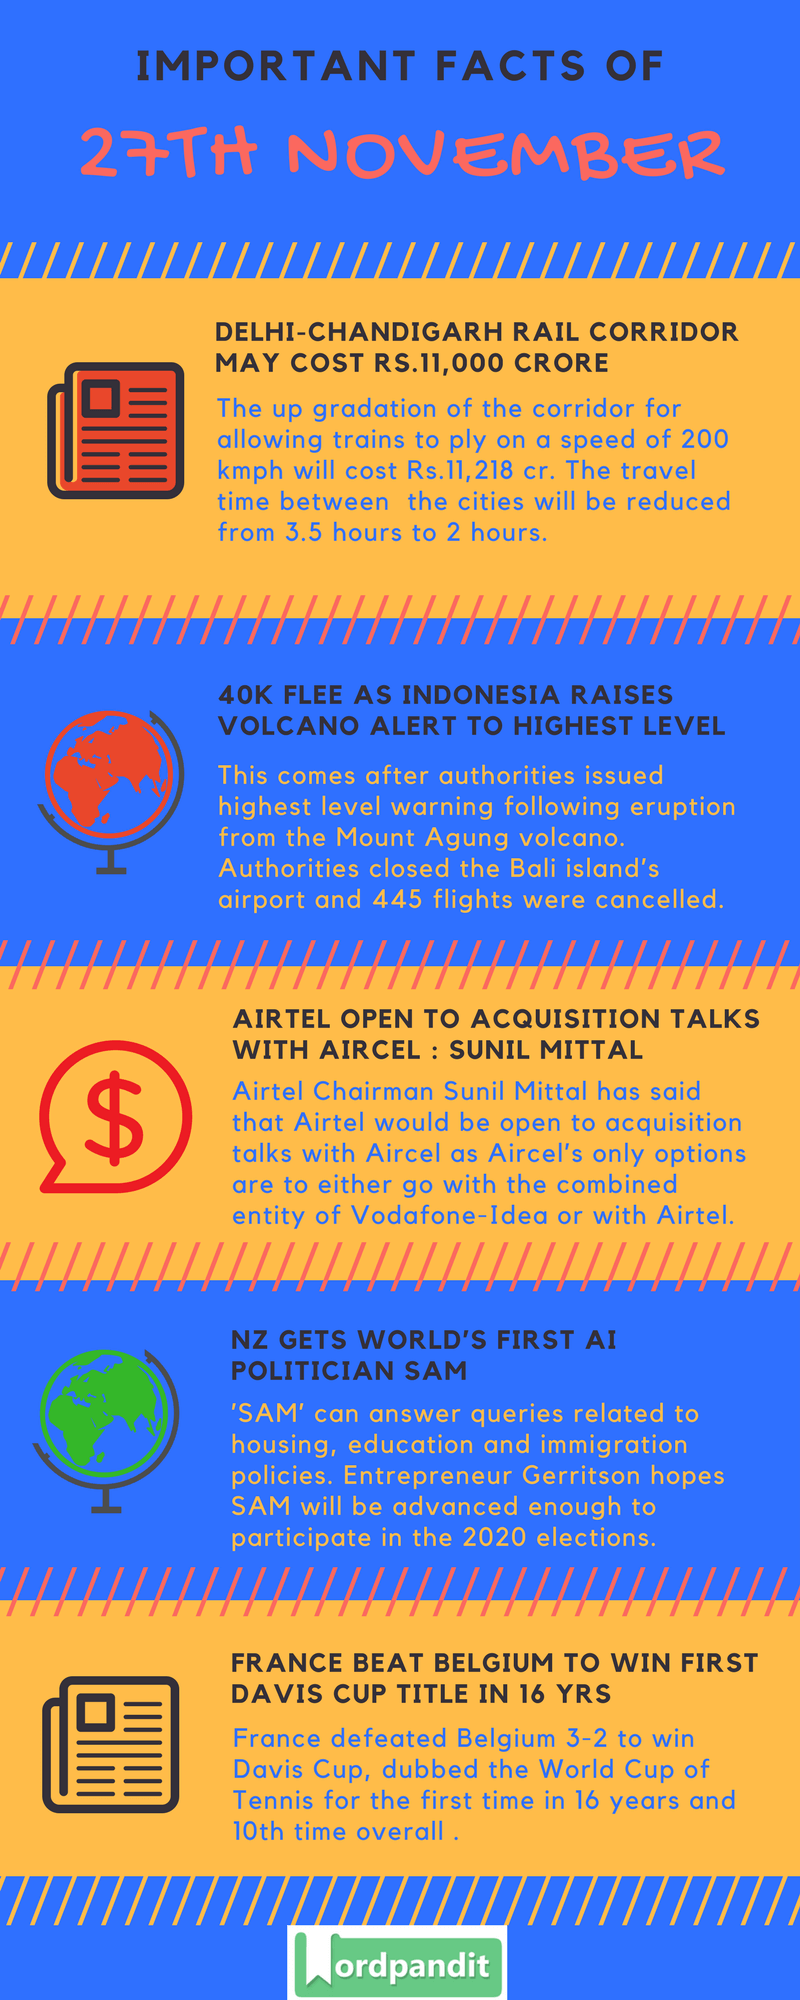 Daily-Current-Affairs-27-november-2017-Current-Affairs-Quiz-november-27-2017-Current-Affairs-Infographic